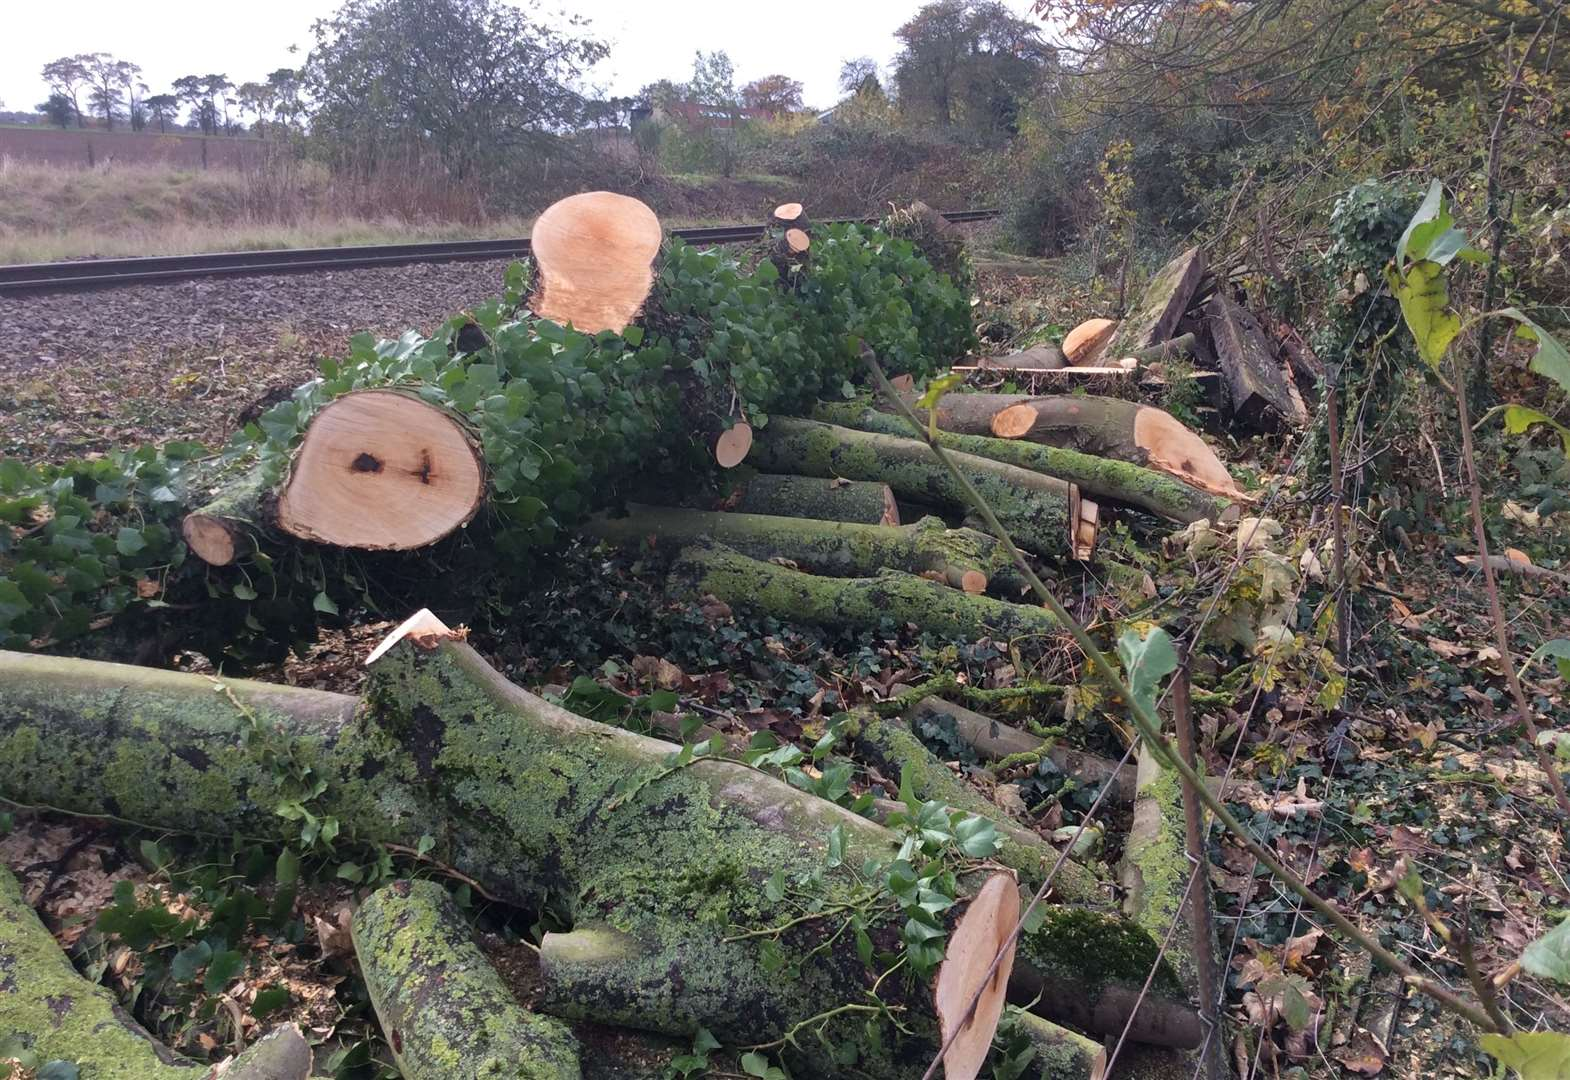 Bob's shock at Network Rail's 'chainsaw massacre'